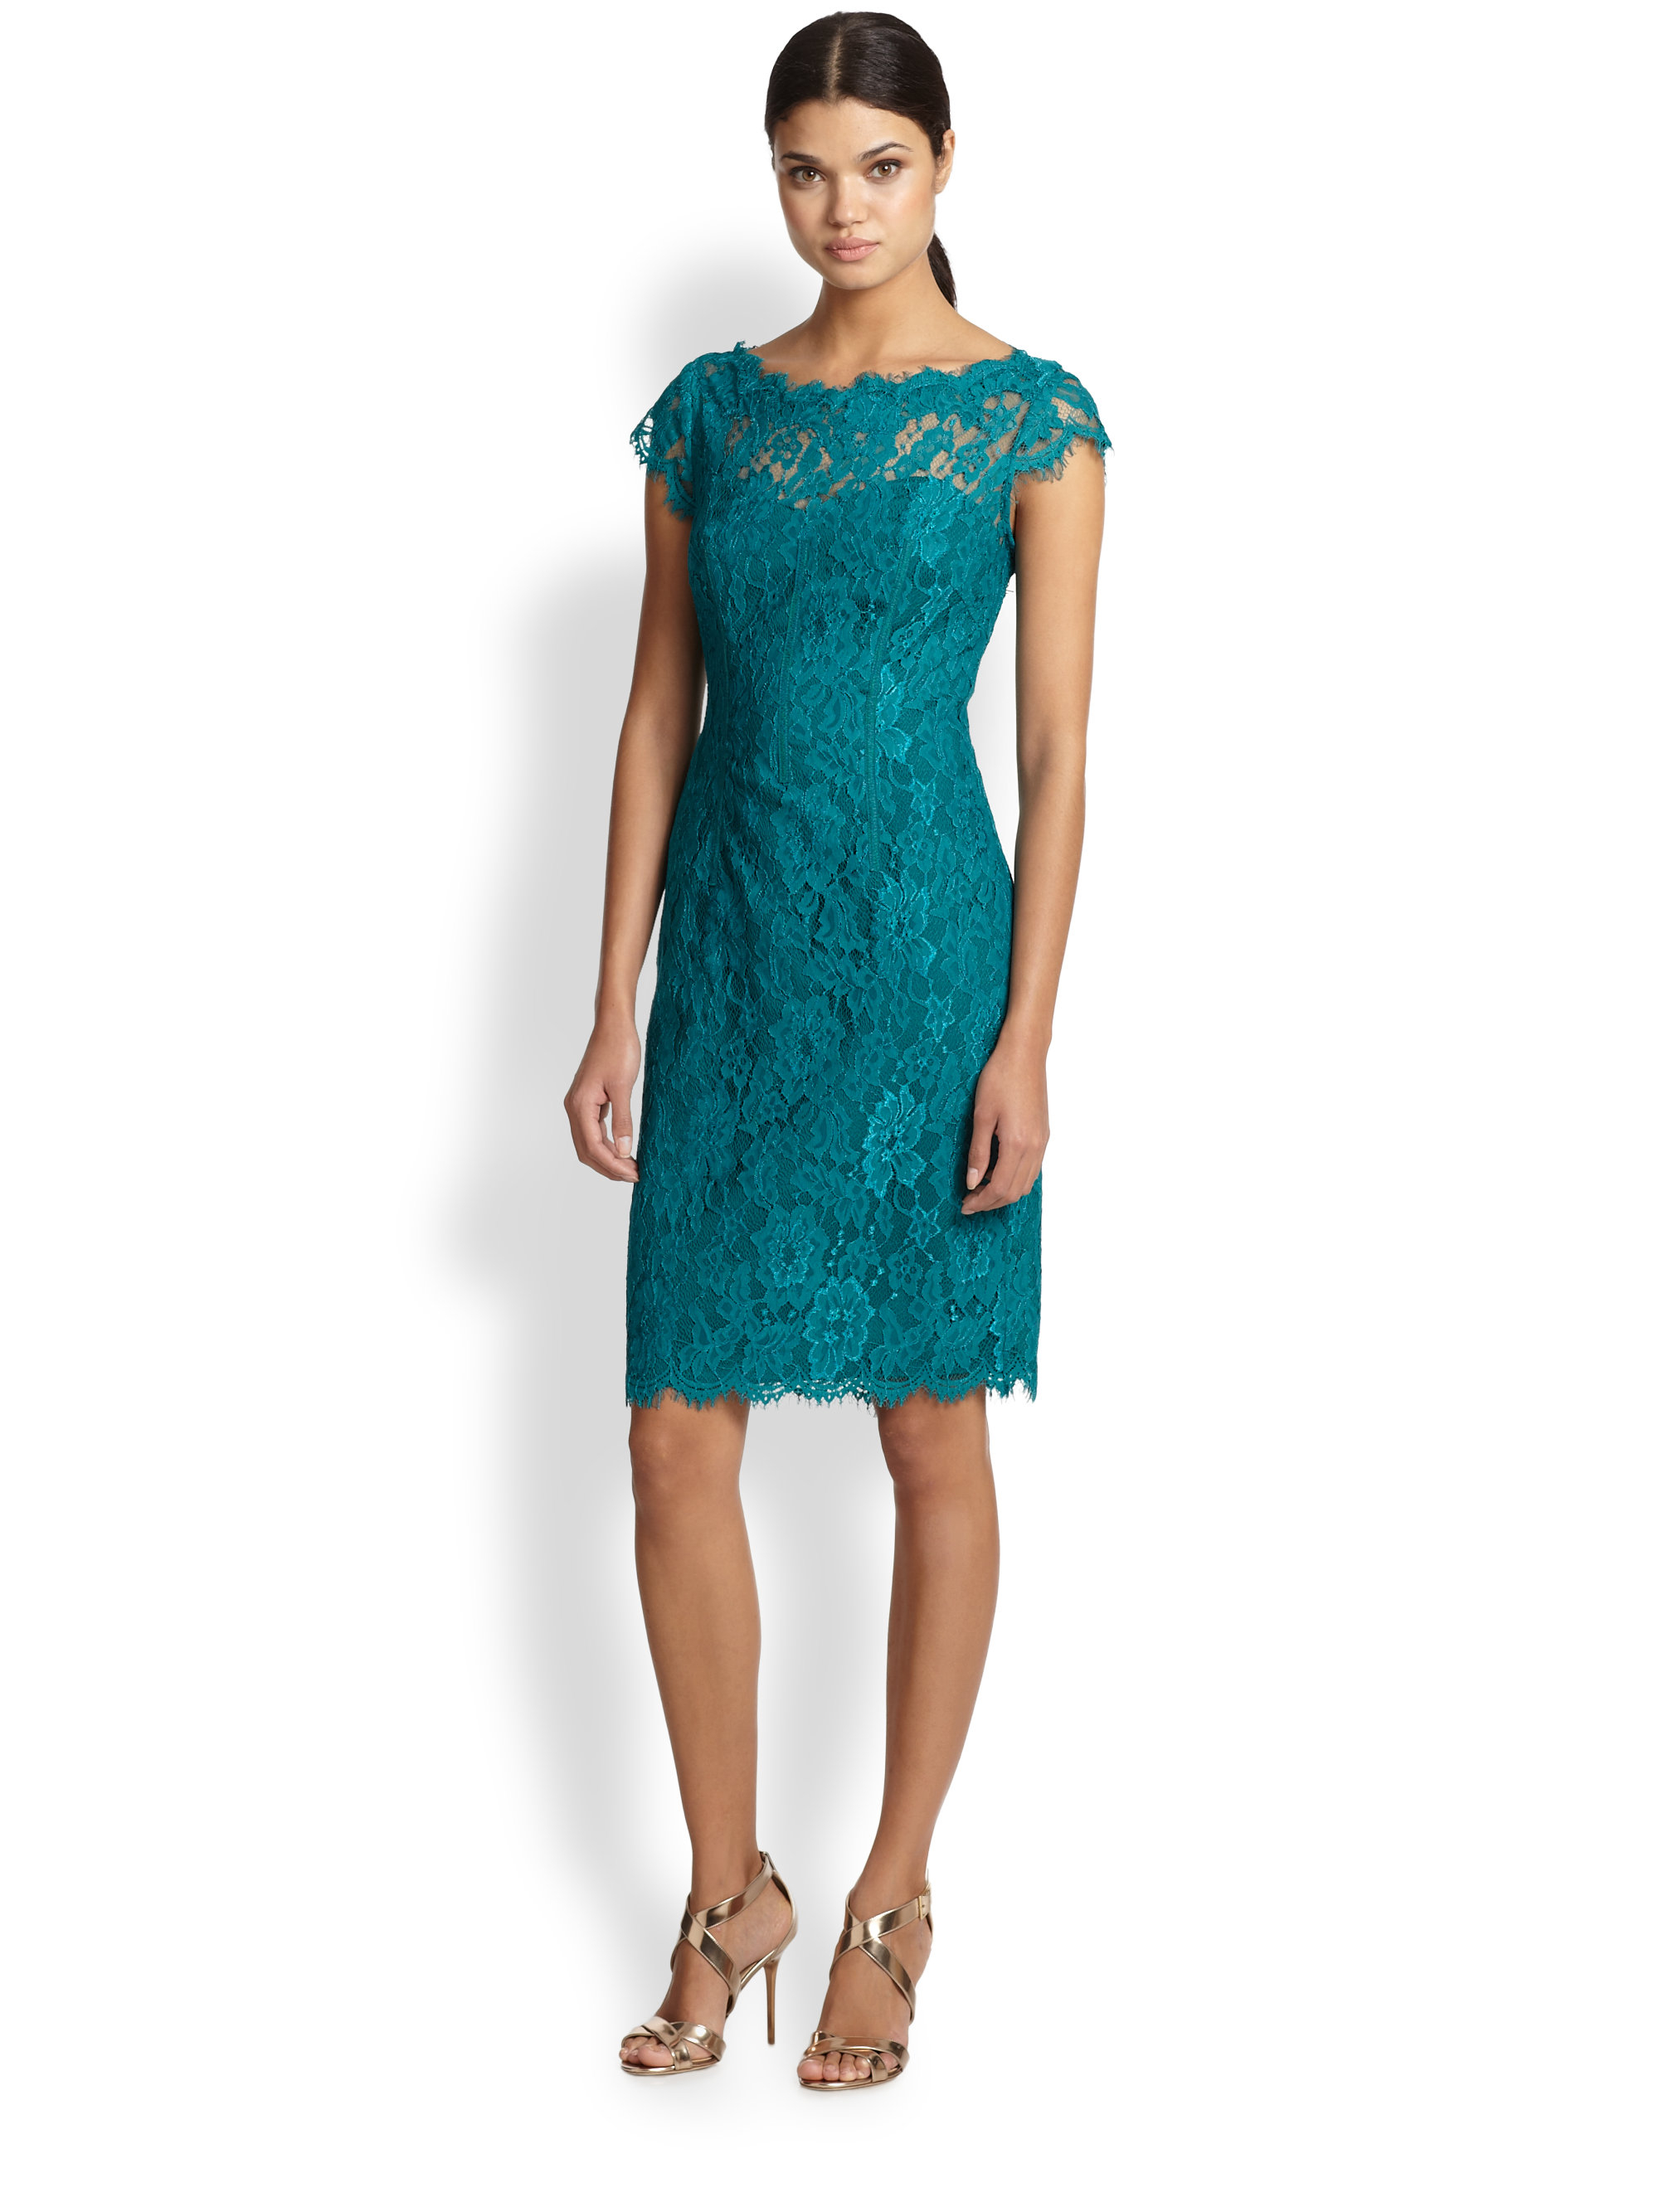 Lyst Ml Monique Lhuillier Lace Sheath Cocktail Dress In